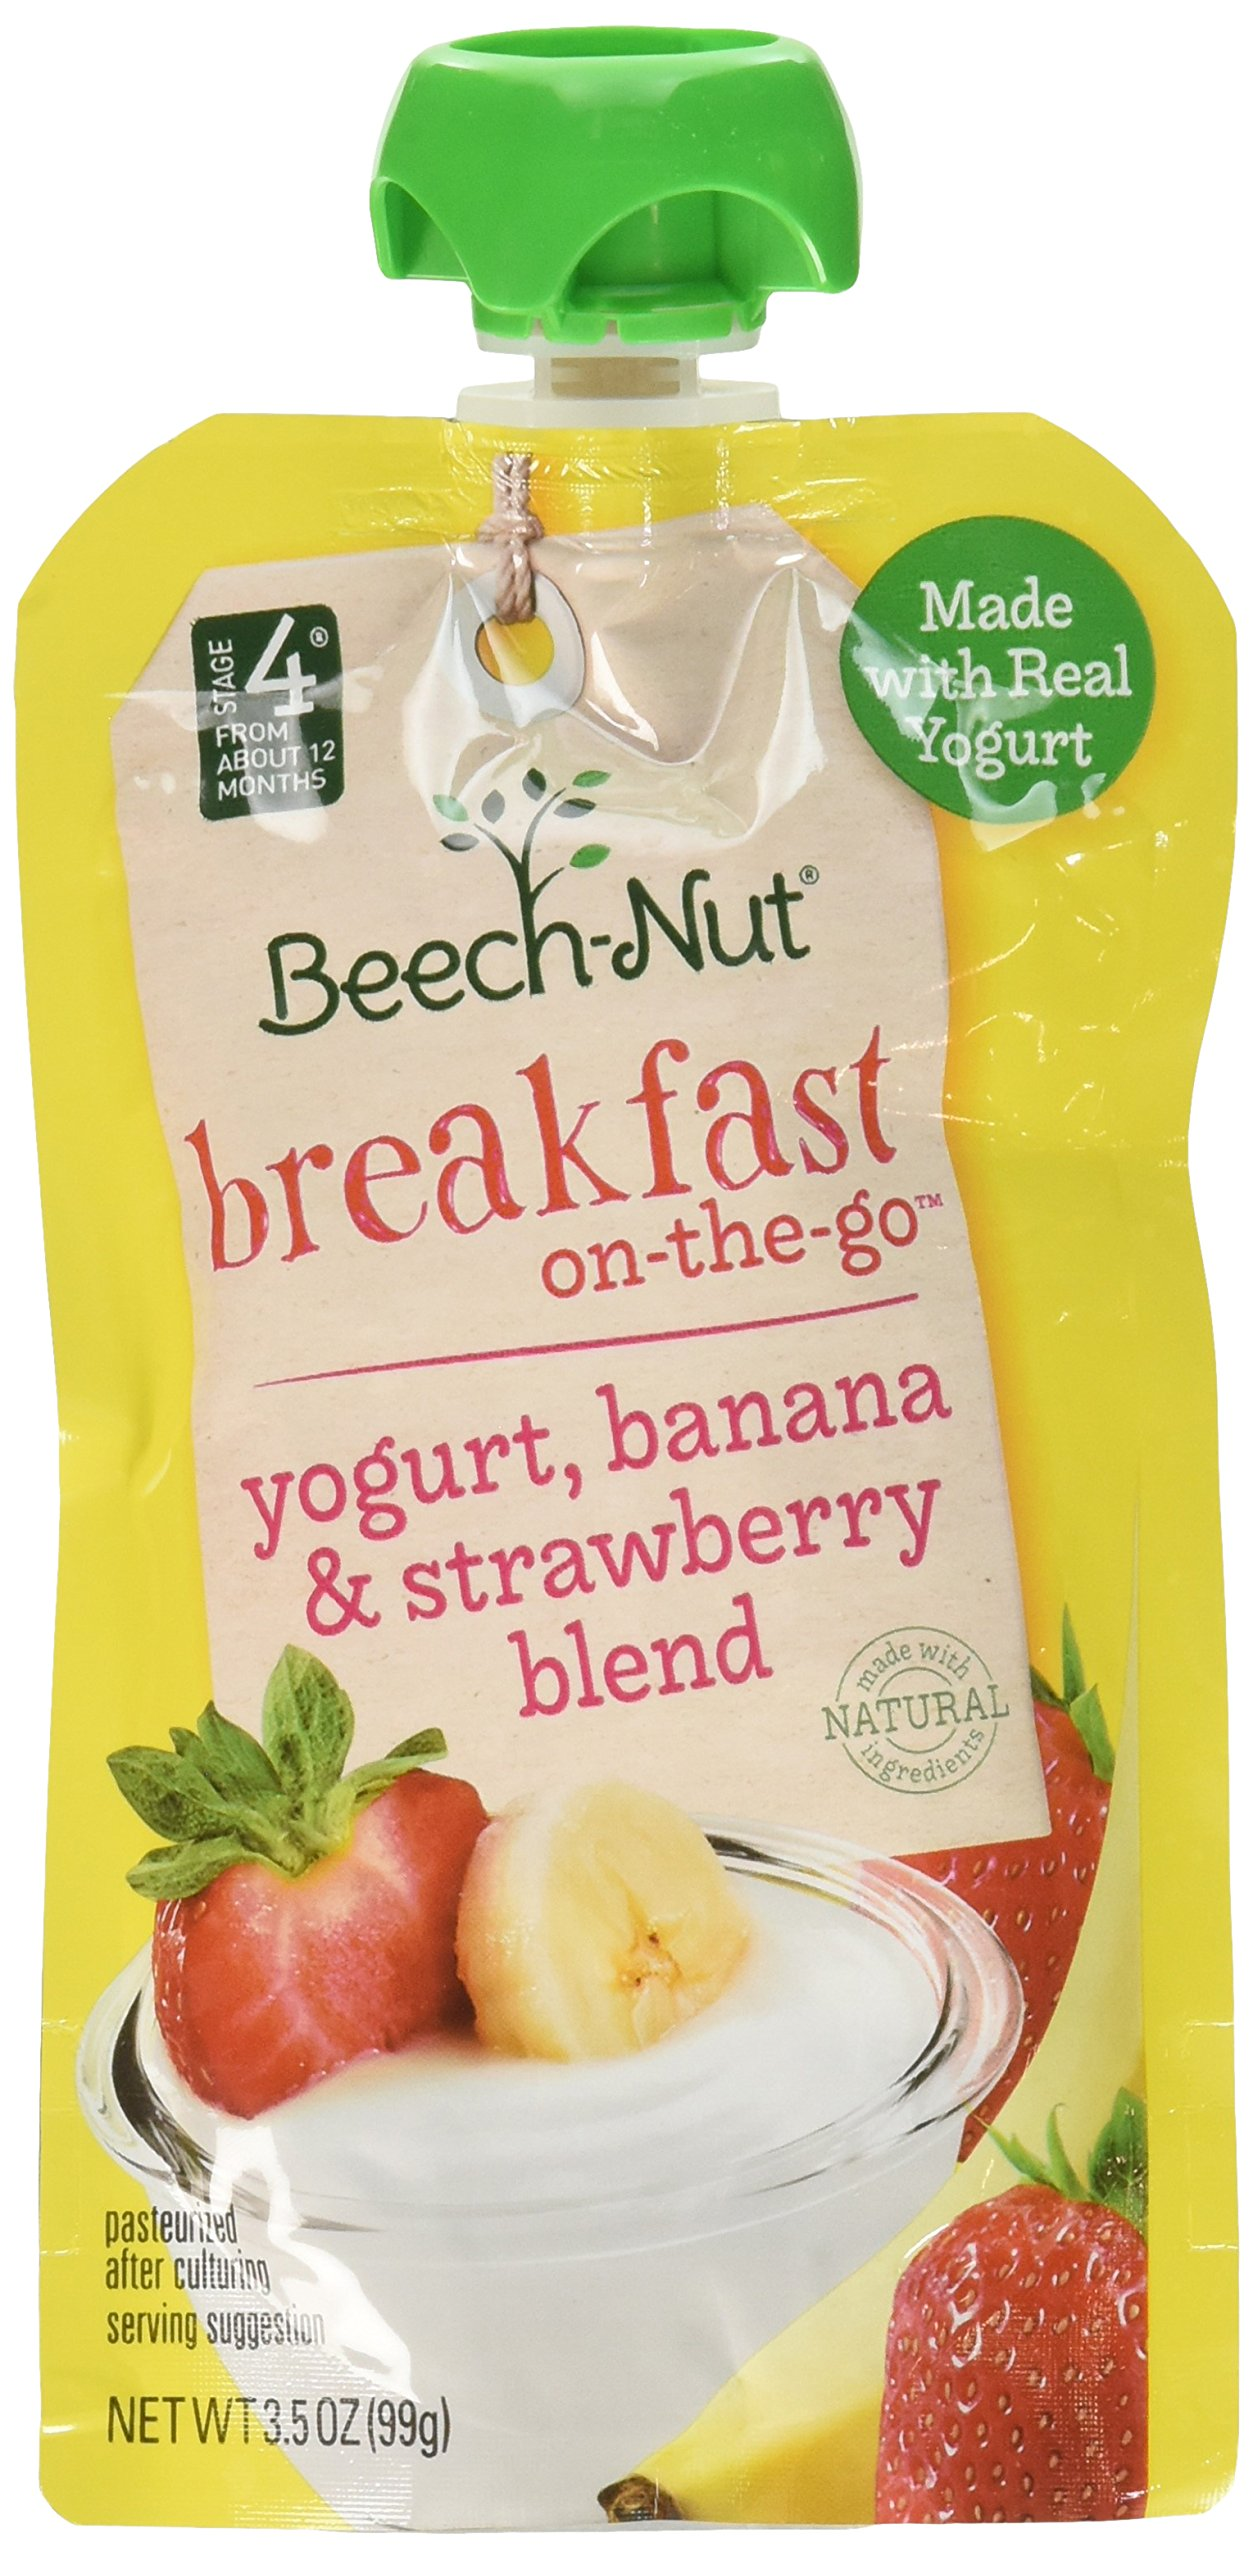 Beech-Nut Breakfast On-the-Go, Baby Food, Stage 4, Yogurt, Banana & Strawberry, 3.5 Ounce Pouch (Pack of 12) by Beech-Nut